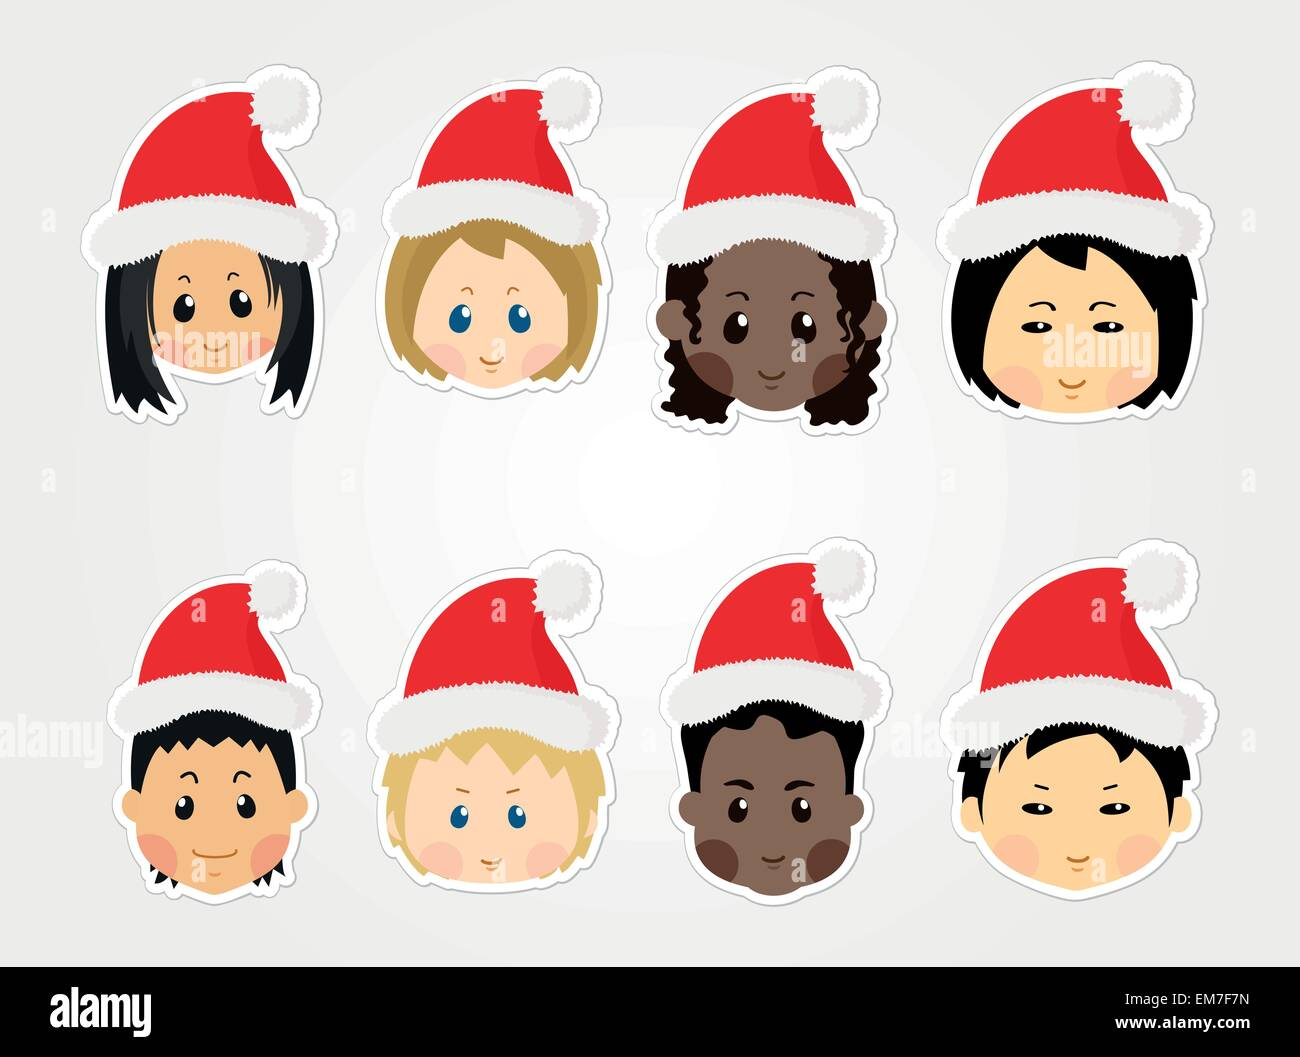 Christmas Face Painting Clip Art